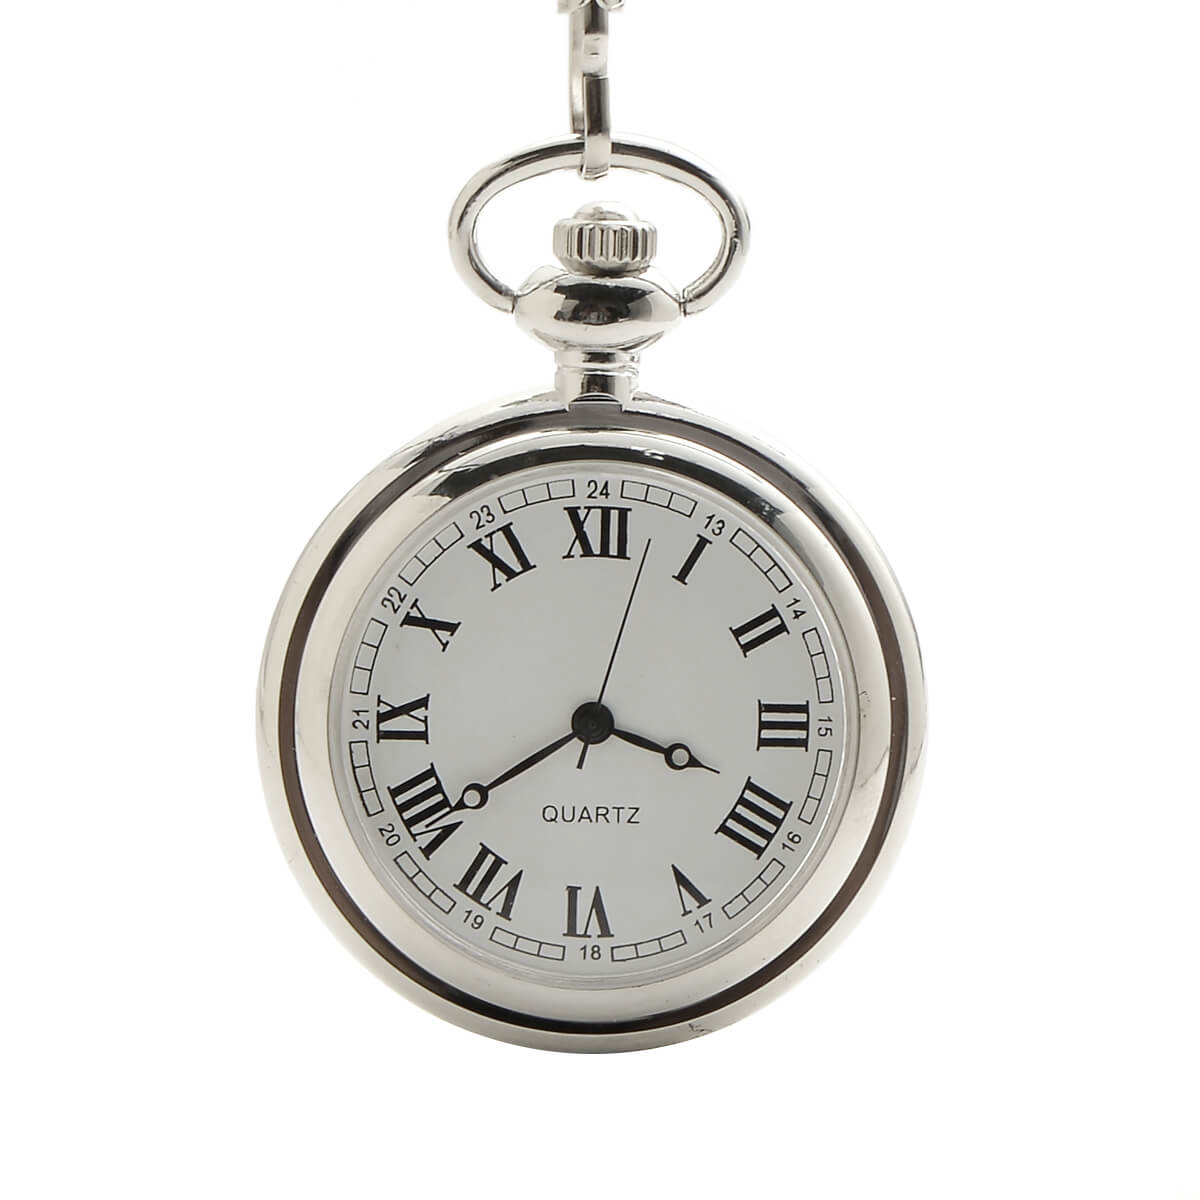 engraved wedding gift pocket watch